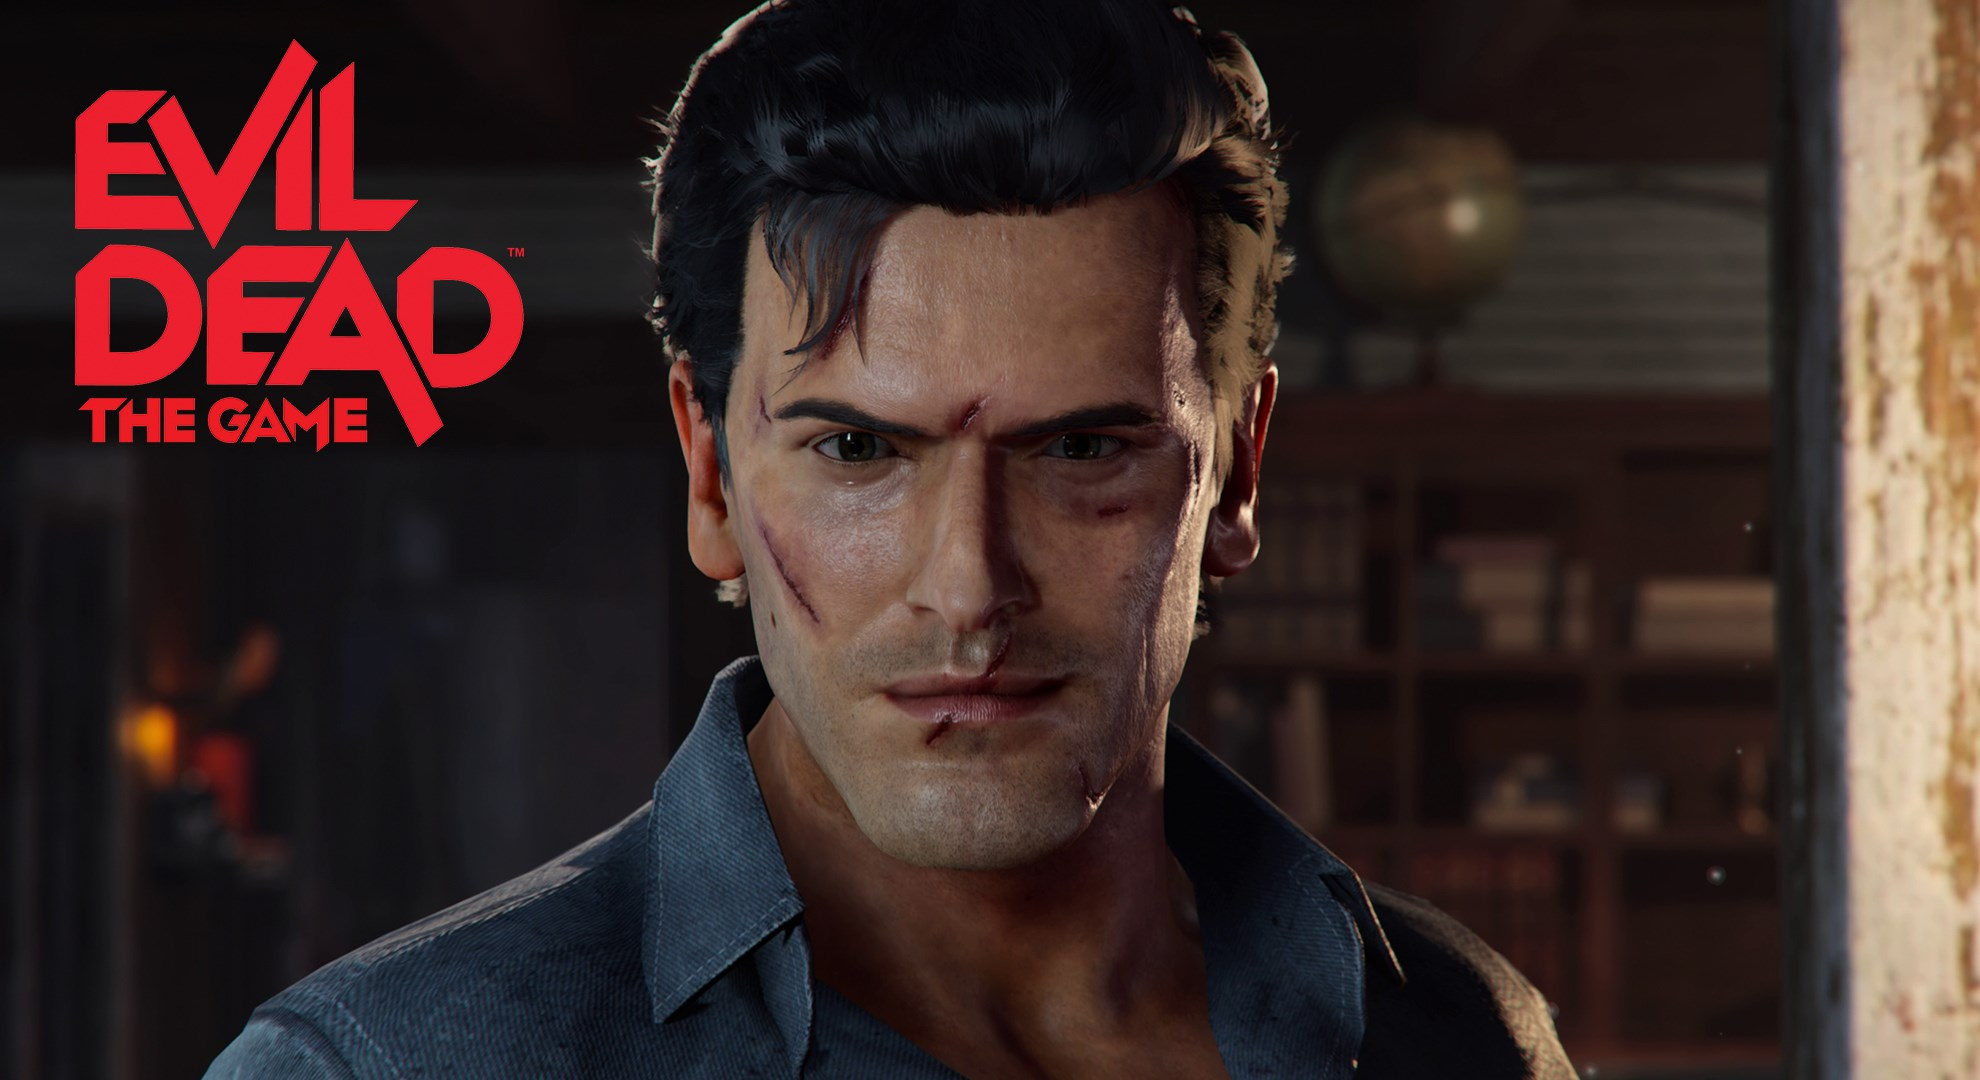 Evil Dead The Game: Release postponed due to single player option